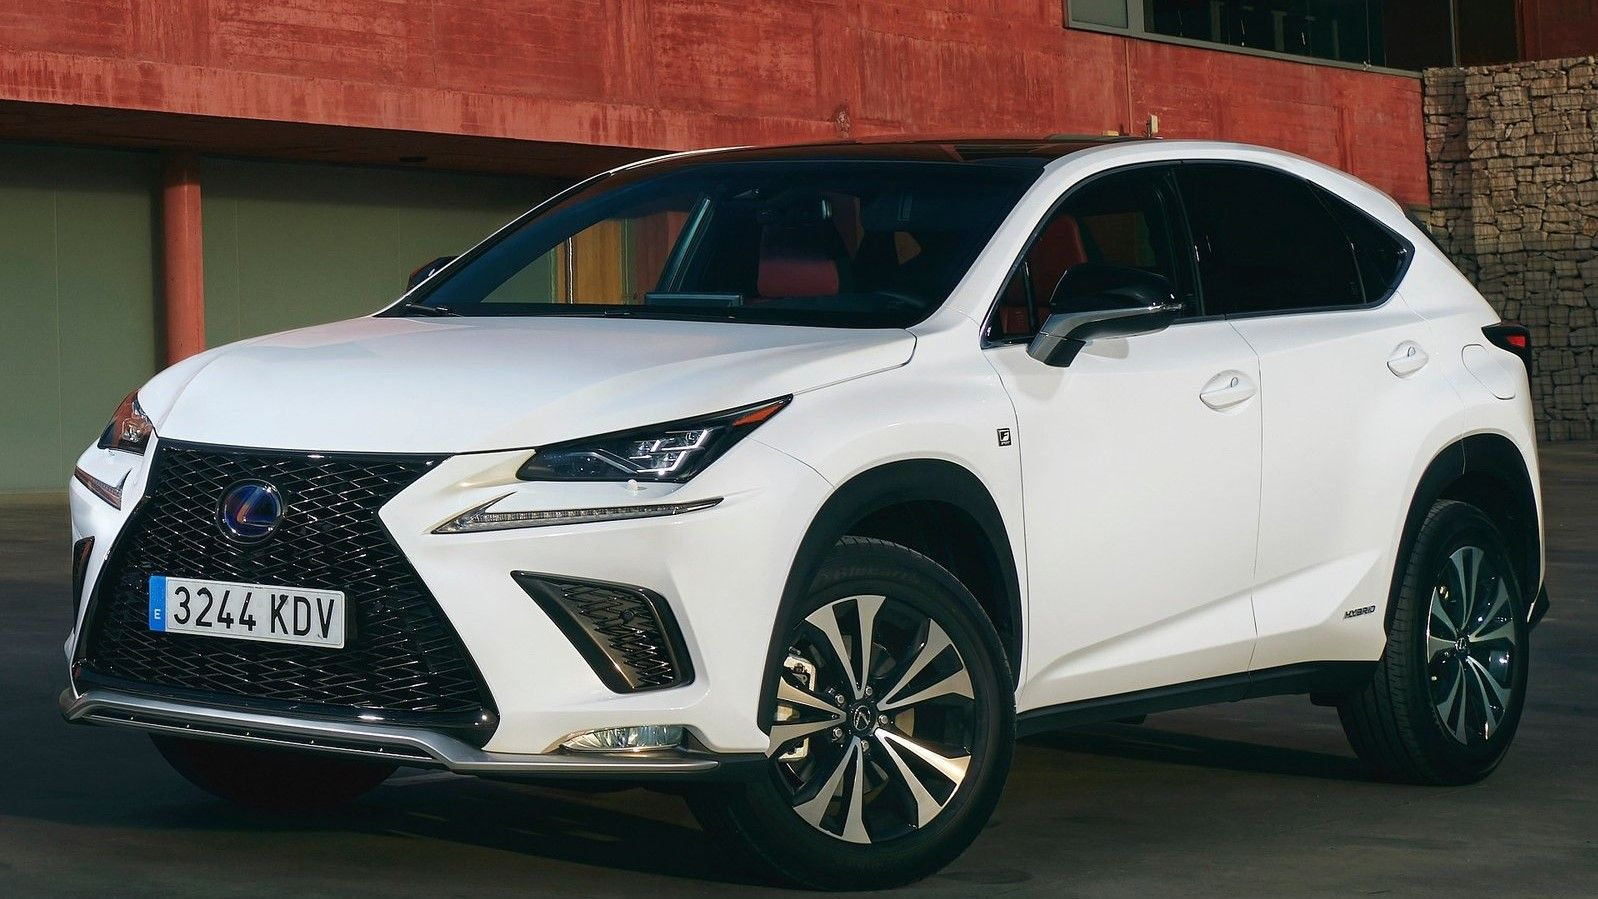 2021 lexus nx 300h review- price, features, performance